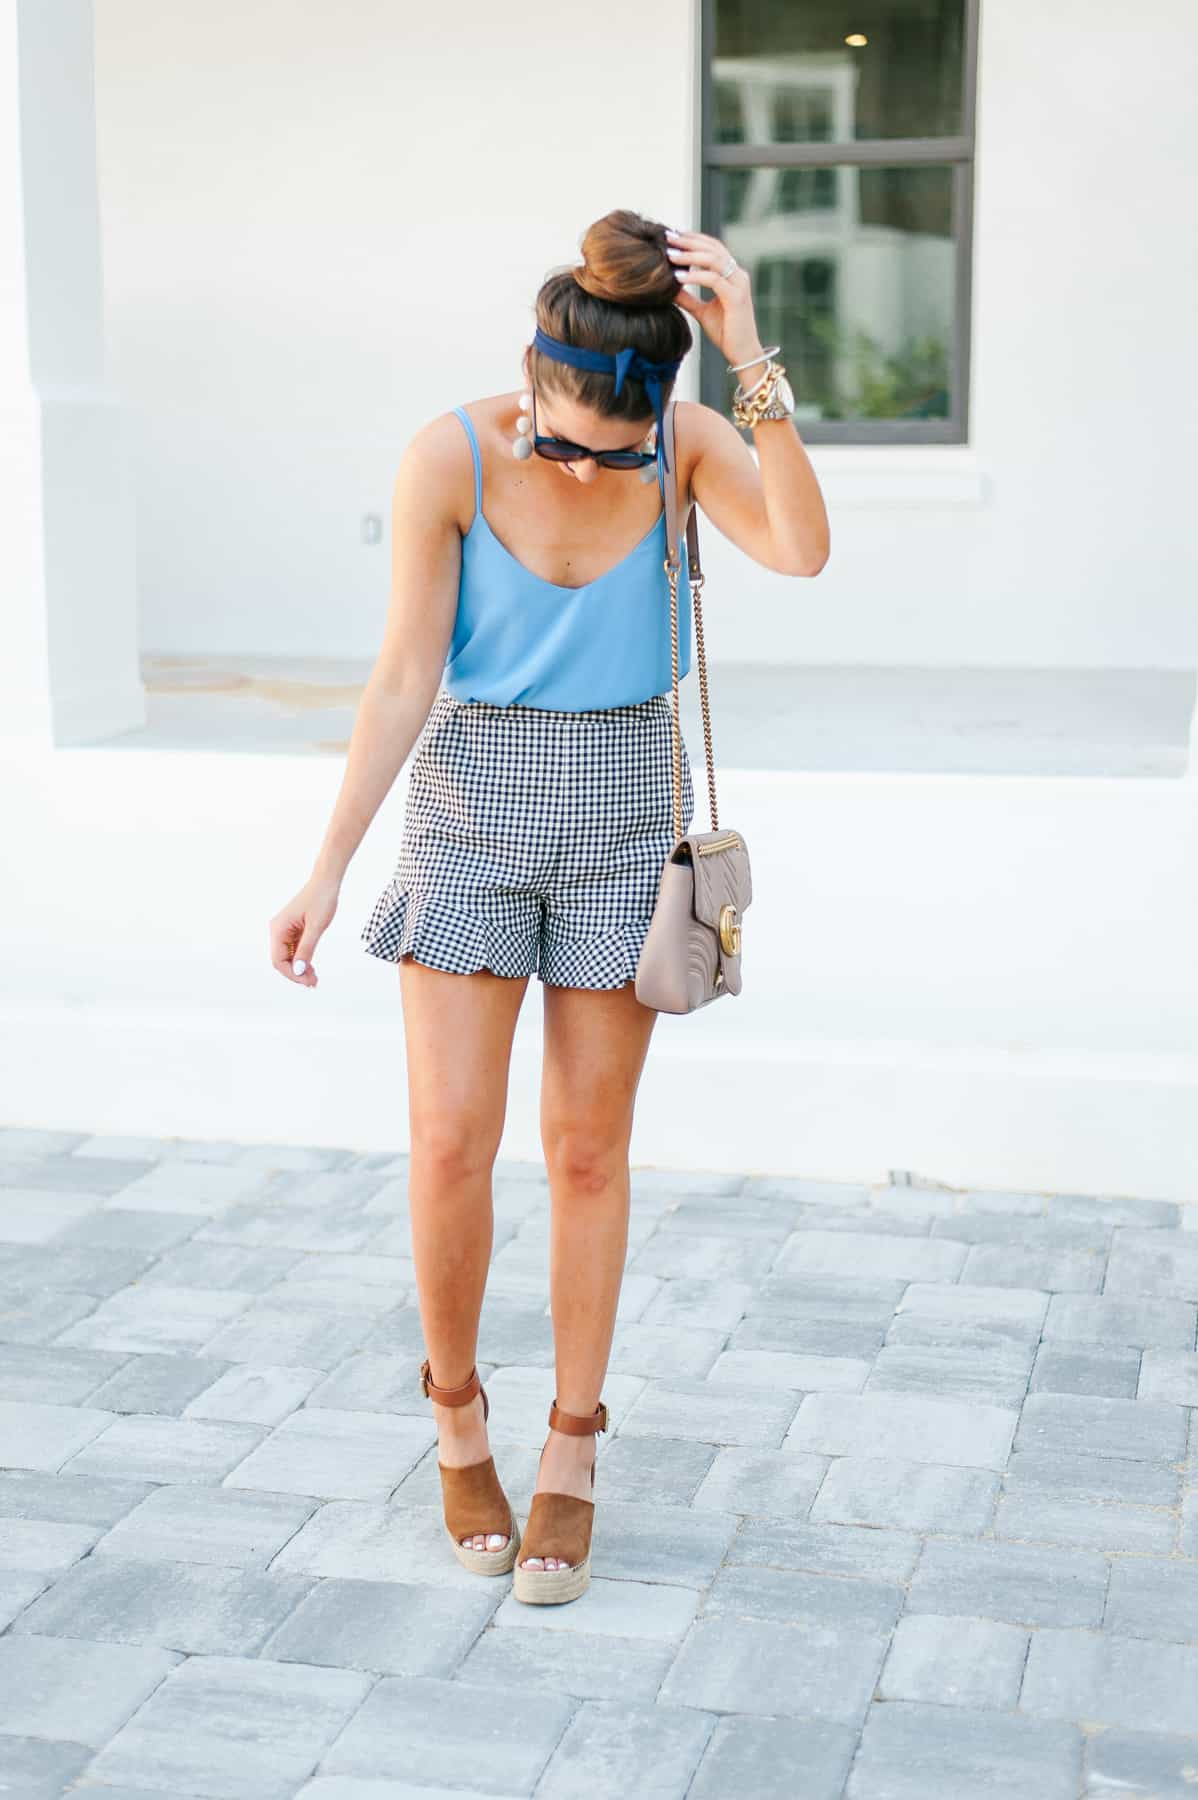 Dress up Buttercup, Dede Raad, Memorial day outfit, Gingham shorts, light blue tank, Houston blogger,